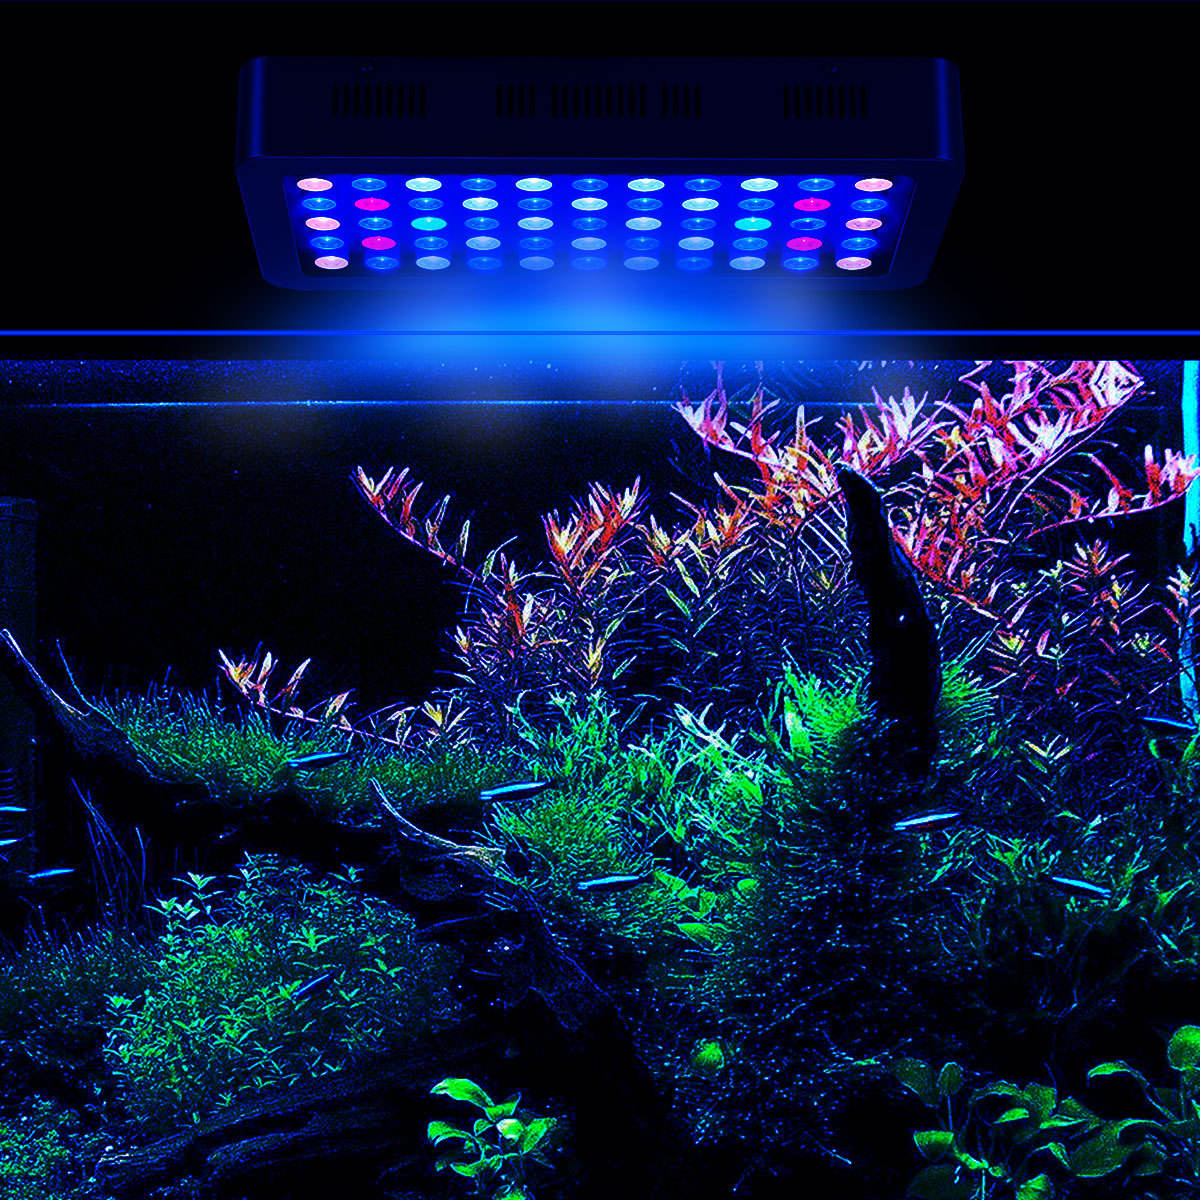 Best Seller 165 W OEM Dimmable Hydroponc Cina LED Akuarium Lampu Terumbu Karang Lampu LED Aquarium